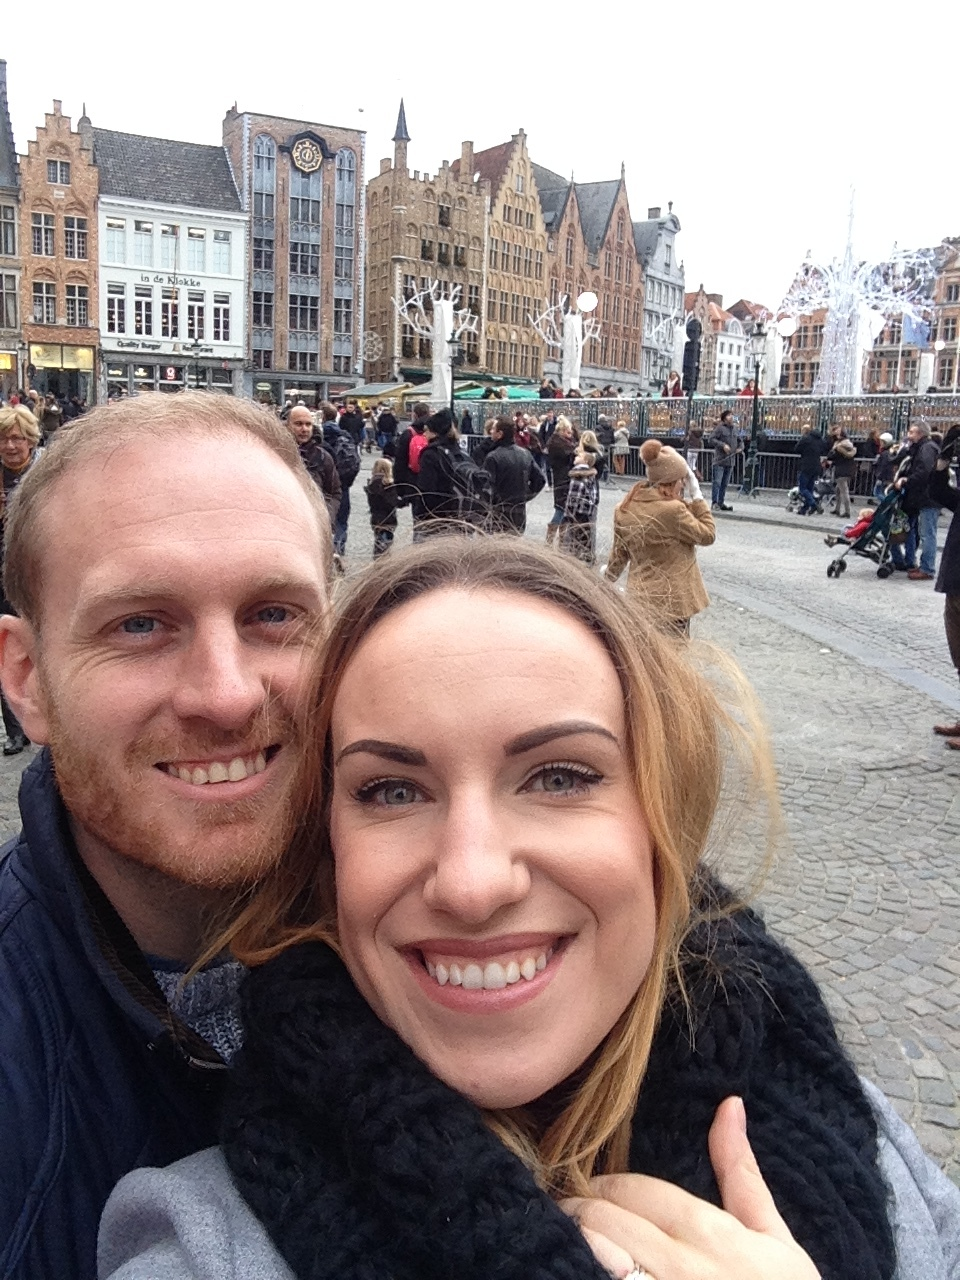 Maz took me to Belgium for my Christmas present. We went to the gorgeous Brugge for the day.